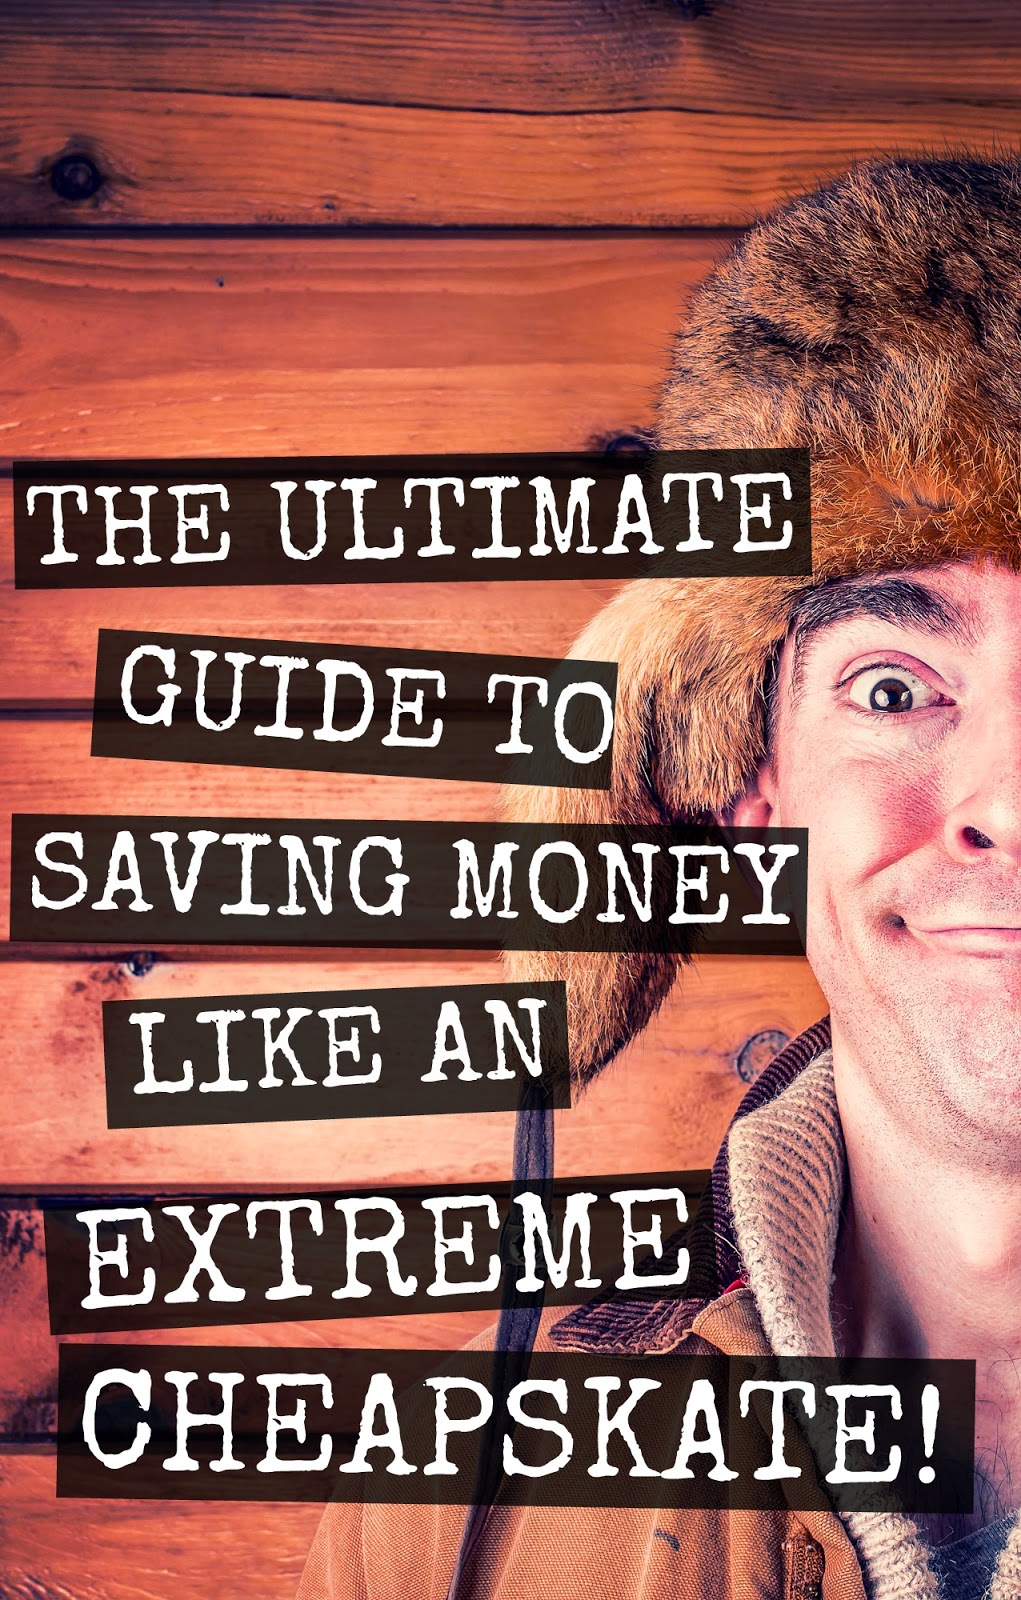 The ultimate guide to saving money like an EXTREME CHEAPSKATE! {frugal living, get out of debt}